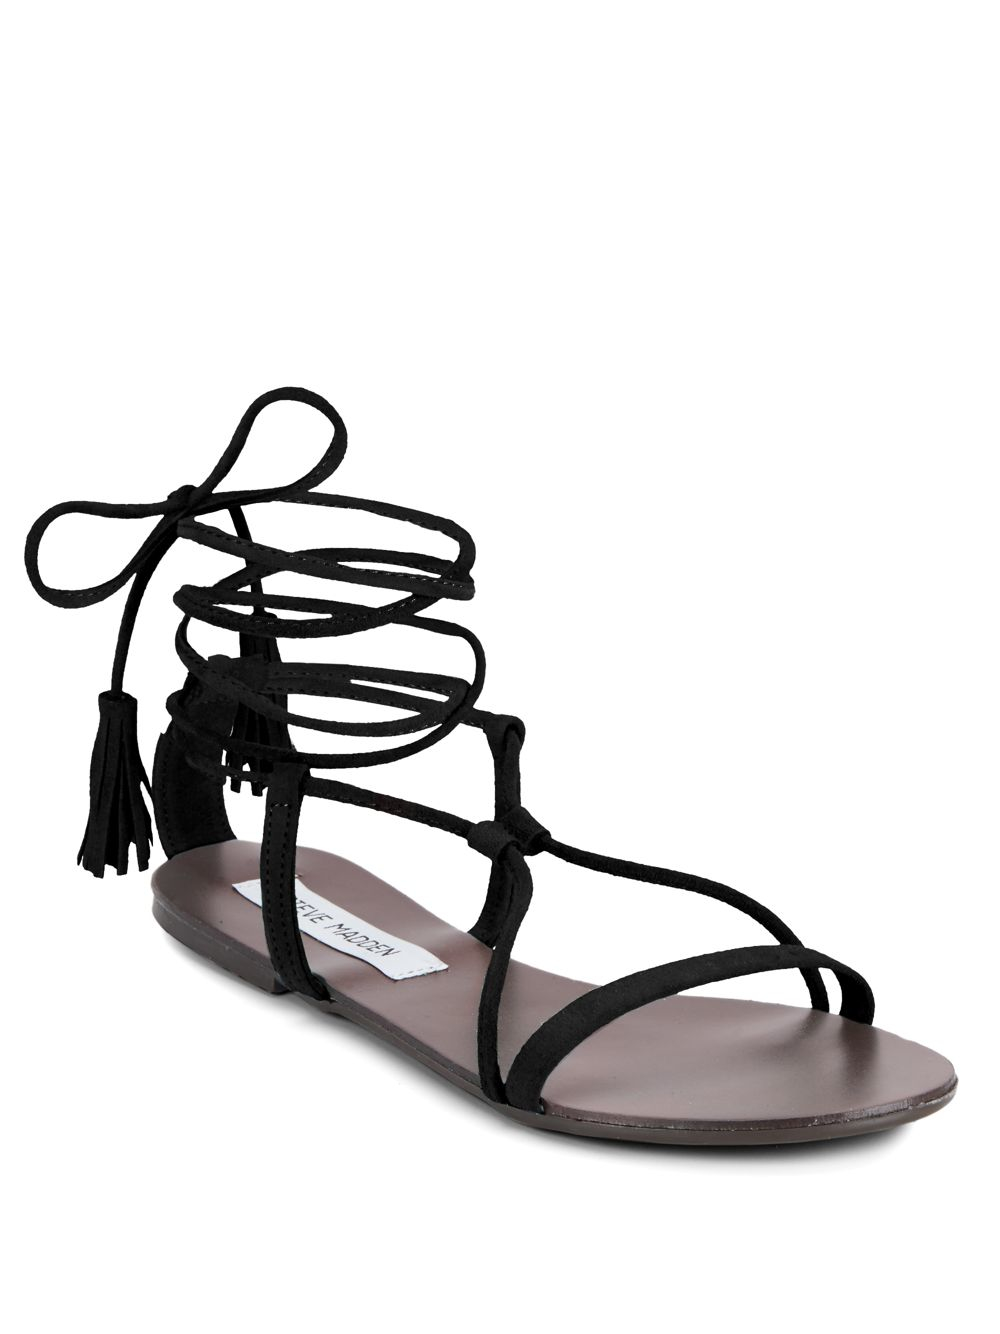 0d549a2c63c Lyst - Steve Madden Suede Open-toe Lace-up Sandals in Black